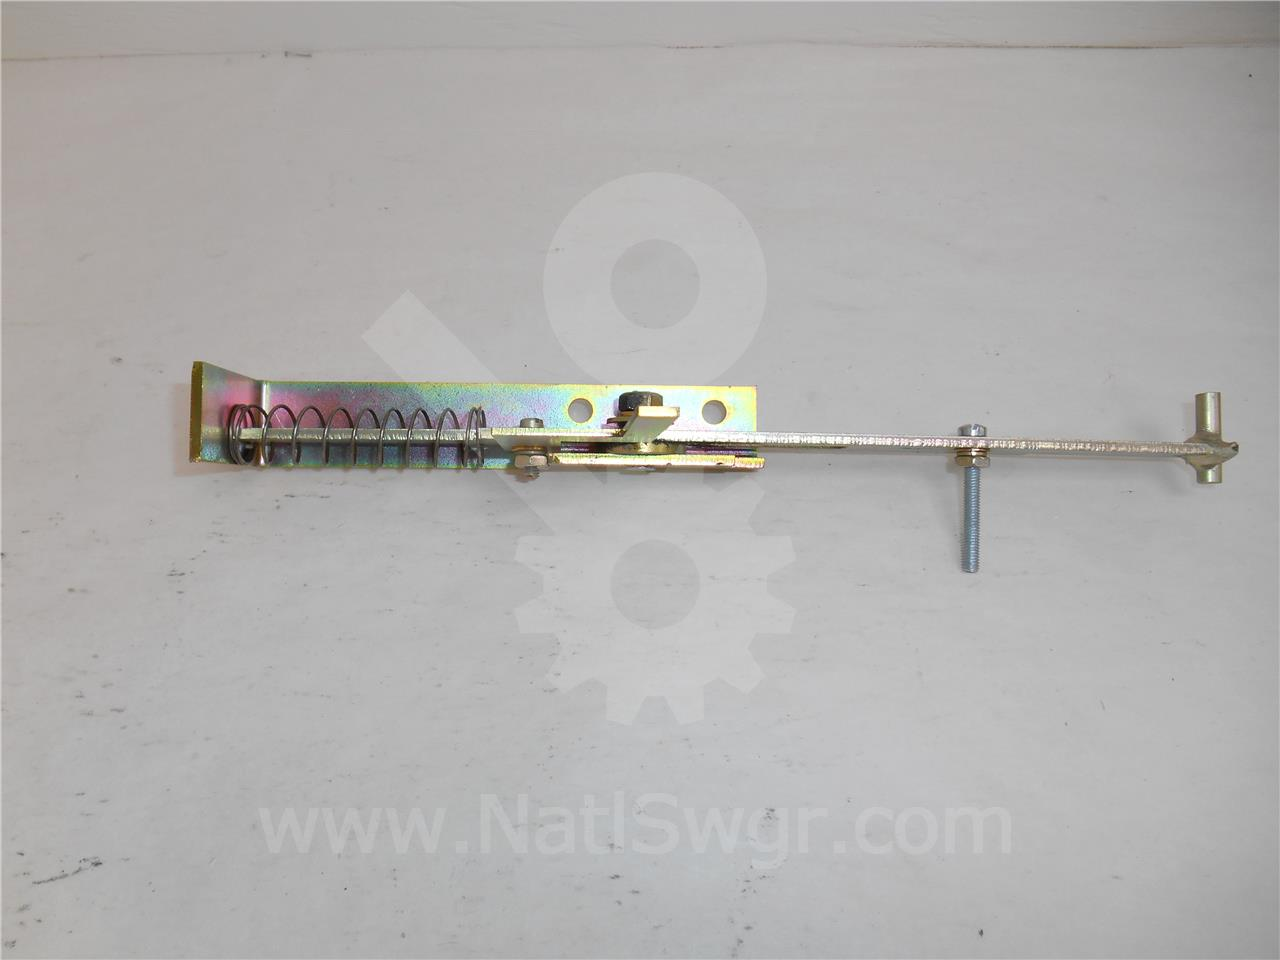 6510C48G03 Cutler-Hammer KIRK KEY INTERLOCK ASSEMBLY, TEST POSITION ONLY FOR VCP-W STANDARD